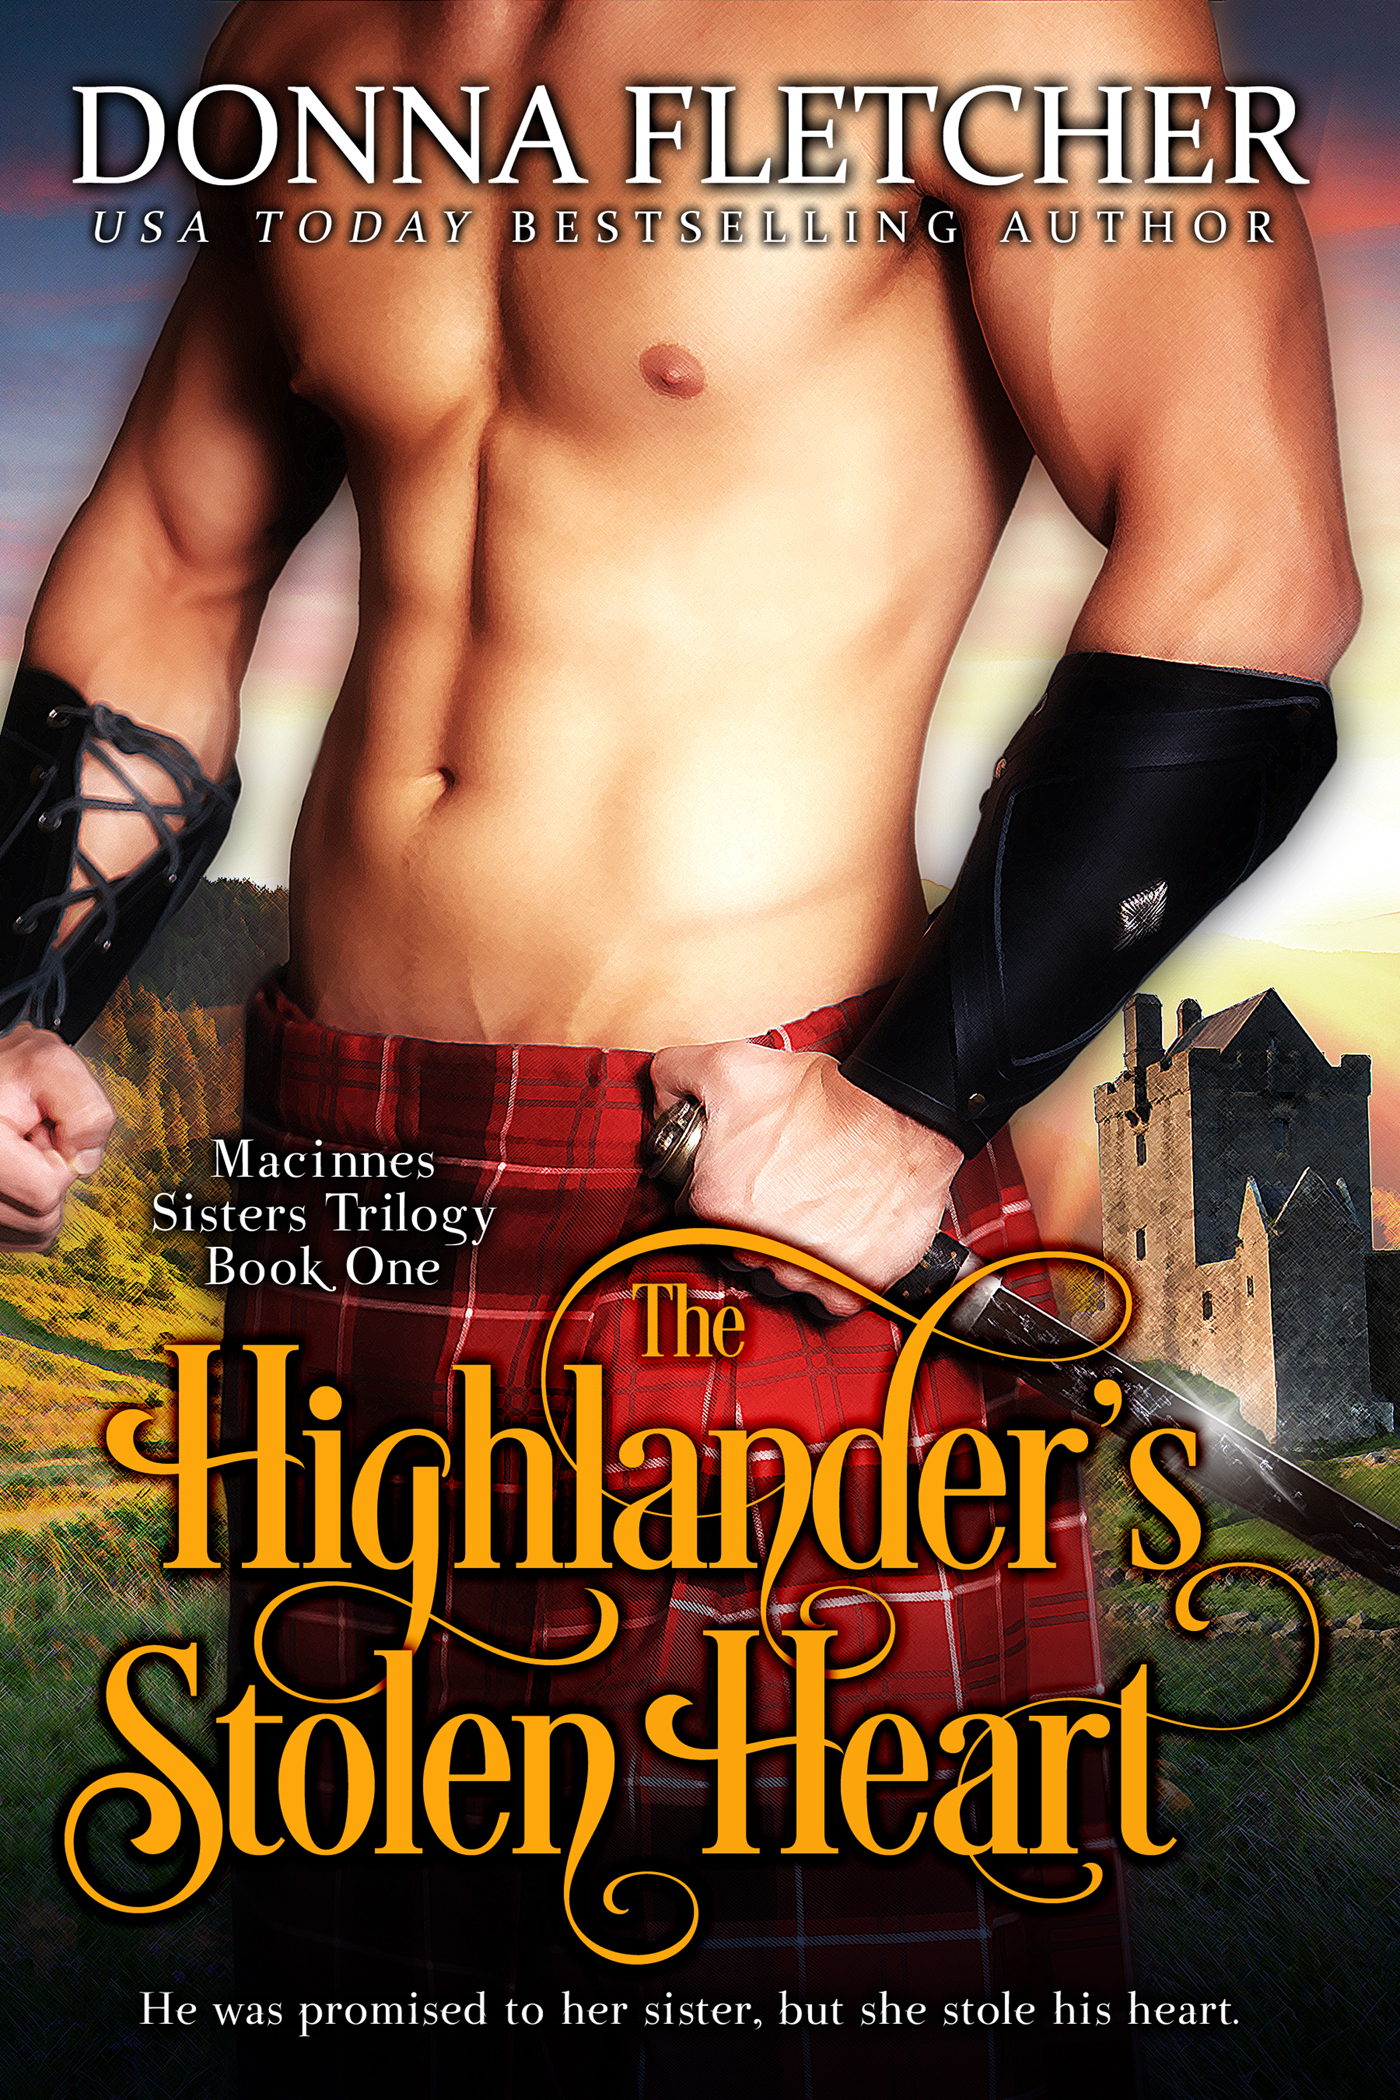 Donna Fletcher - The Highlanders Stolen Heart